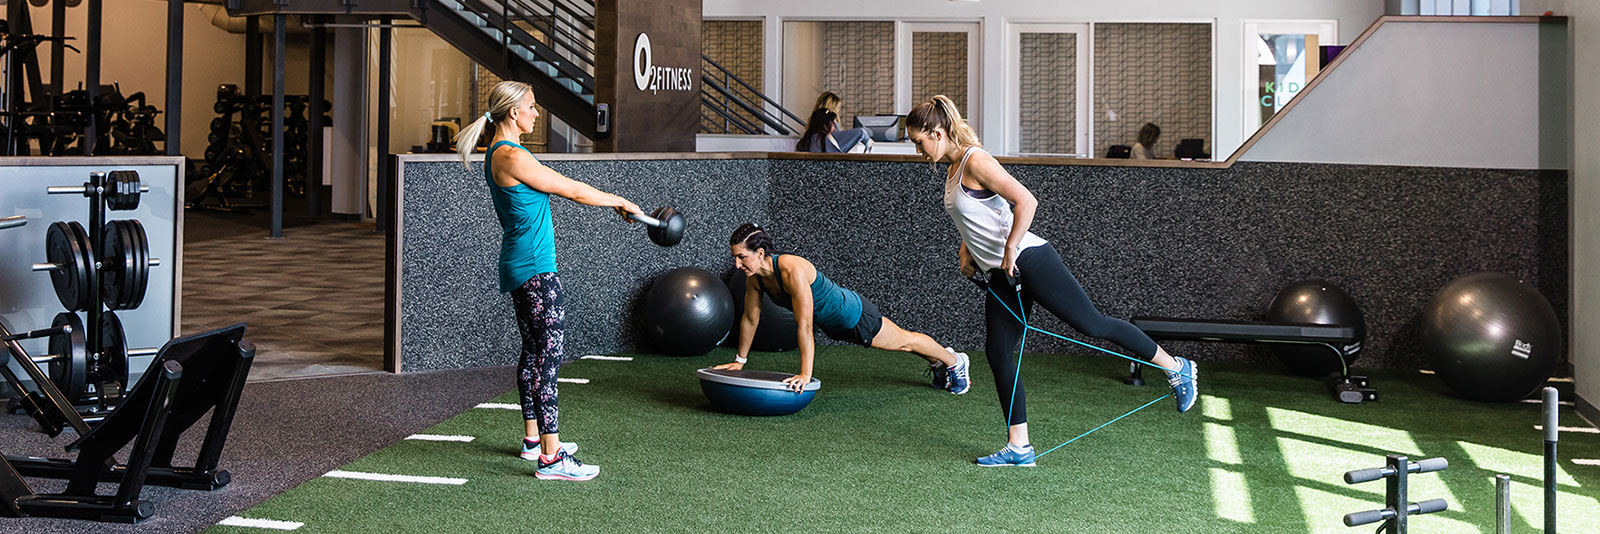 O2 Fitness 7-Day Free Trial